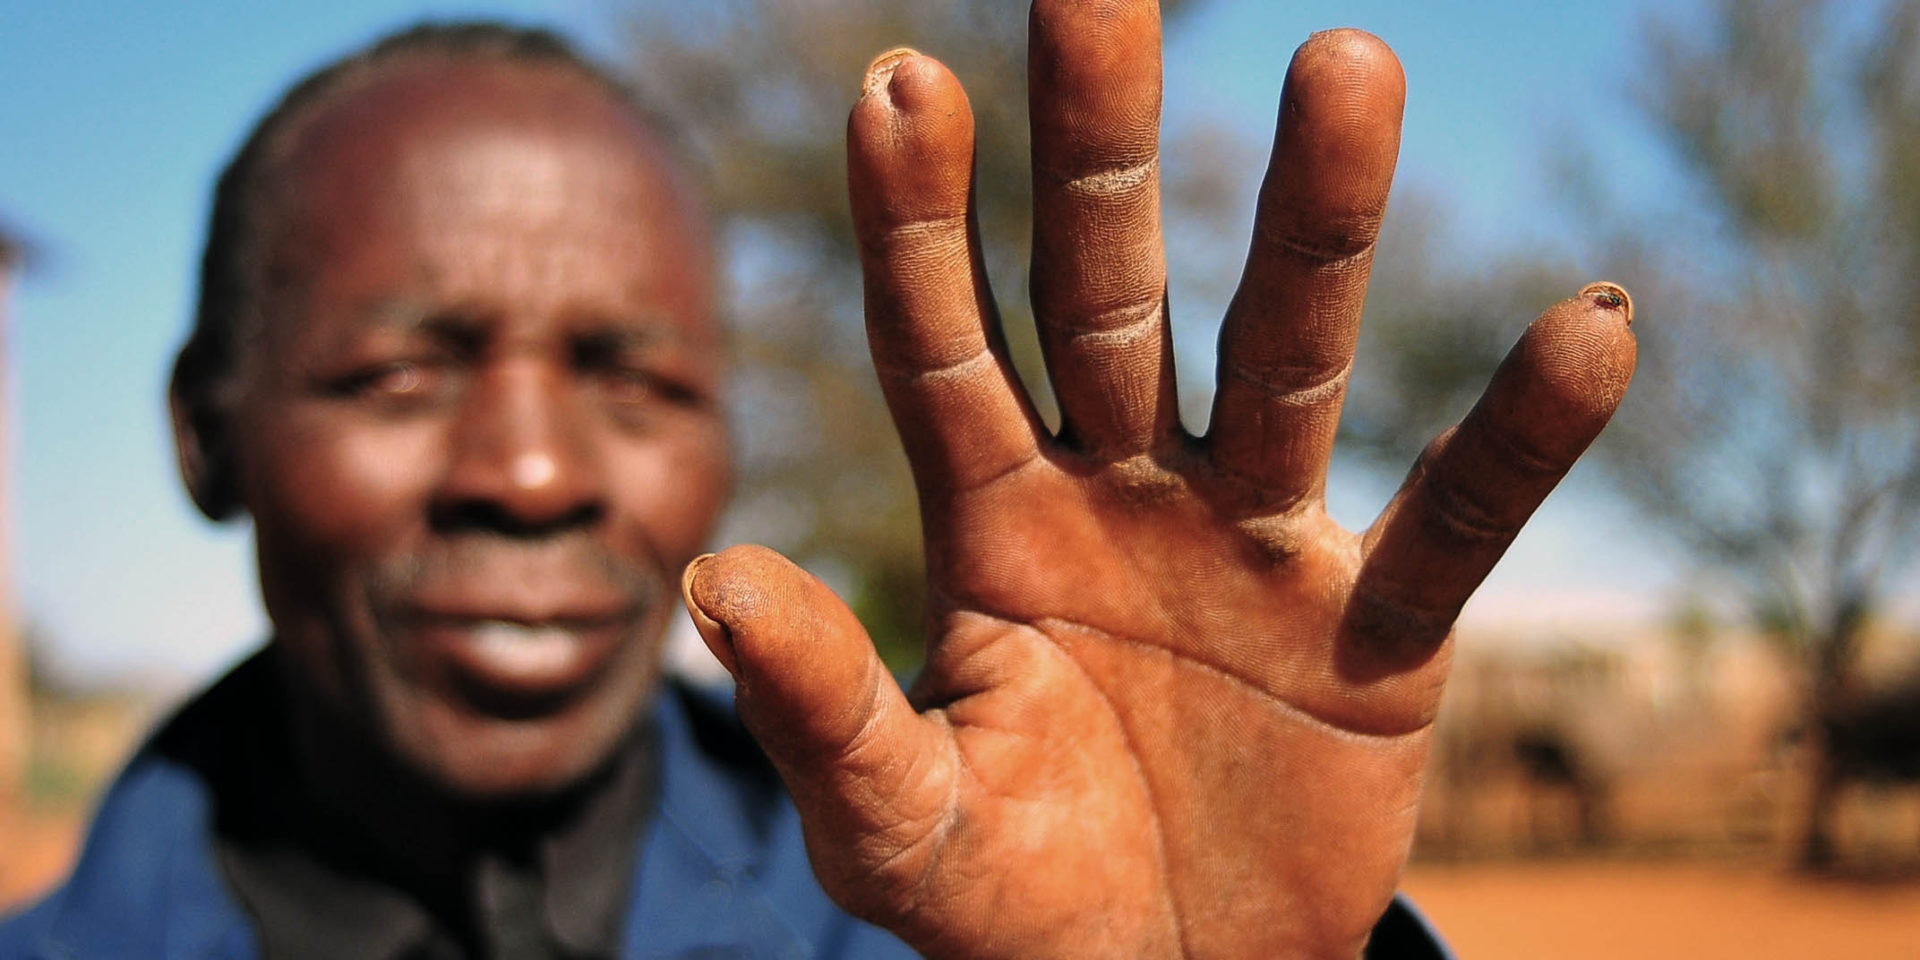 29 August 2018: Samuel Morudu holds up his hand to show his injury.